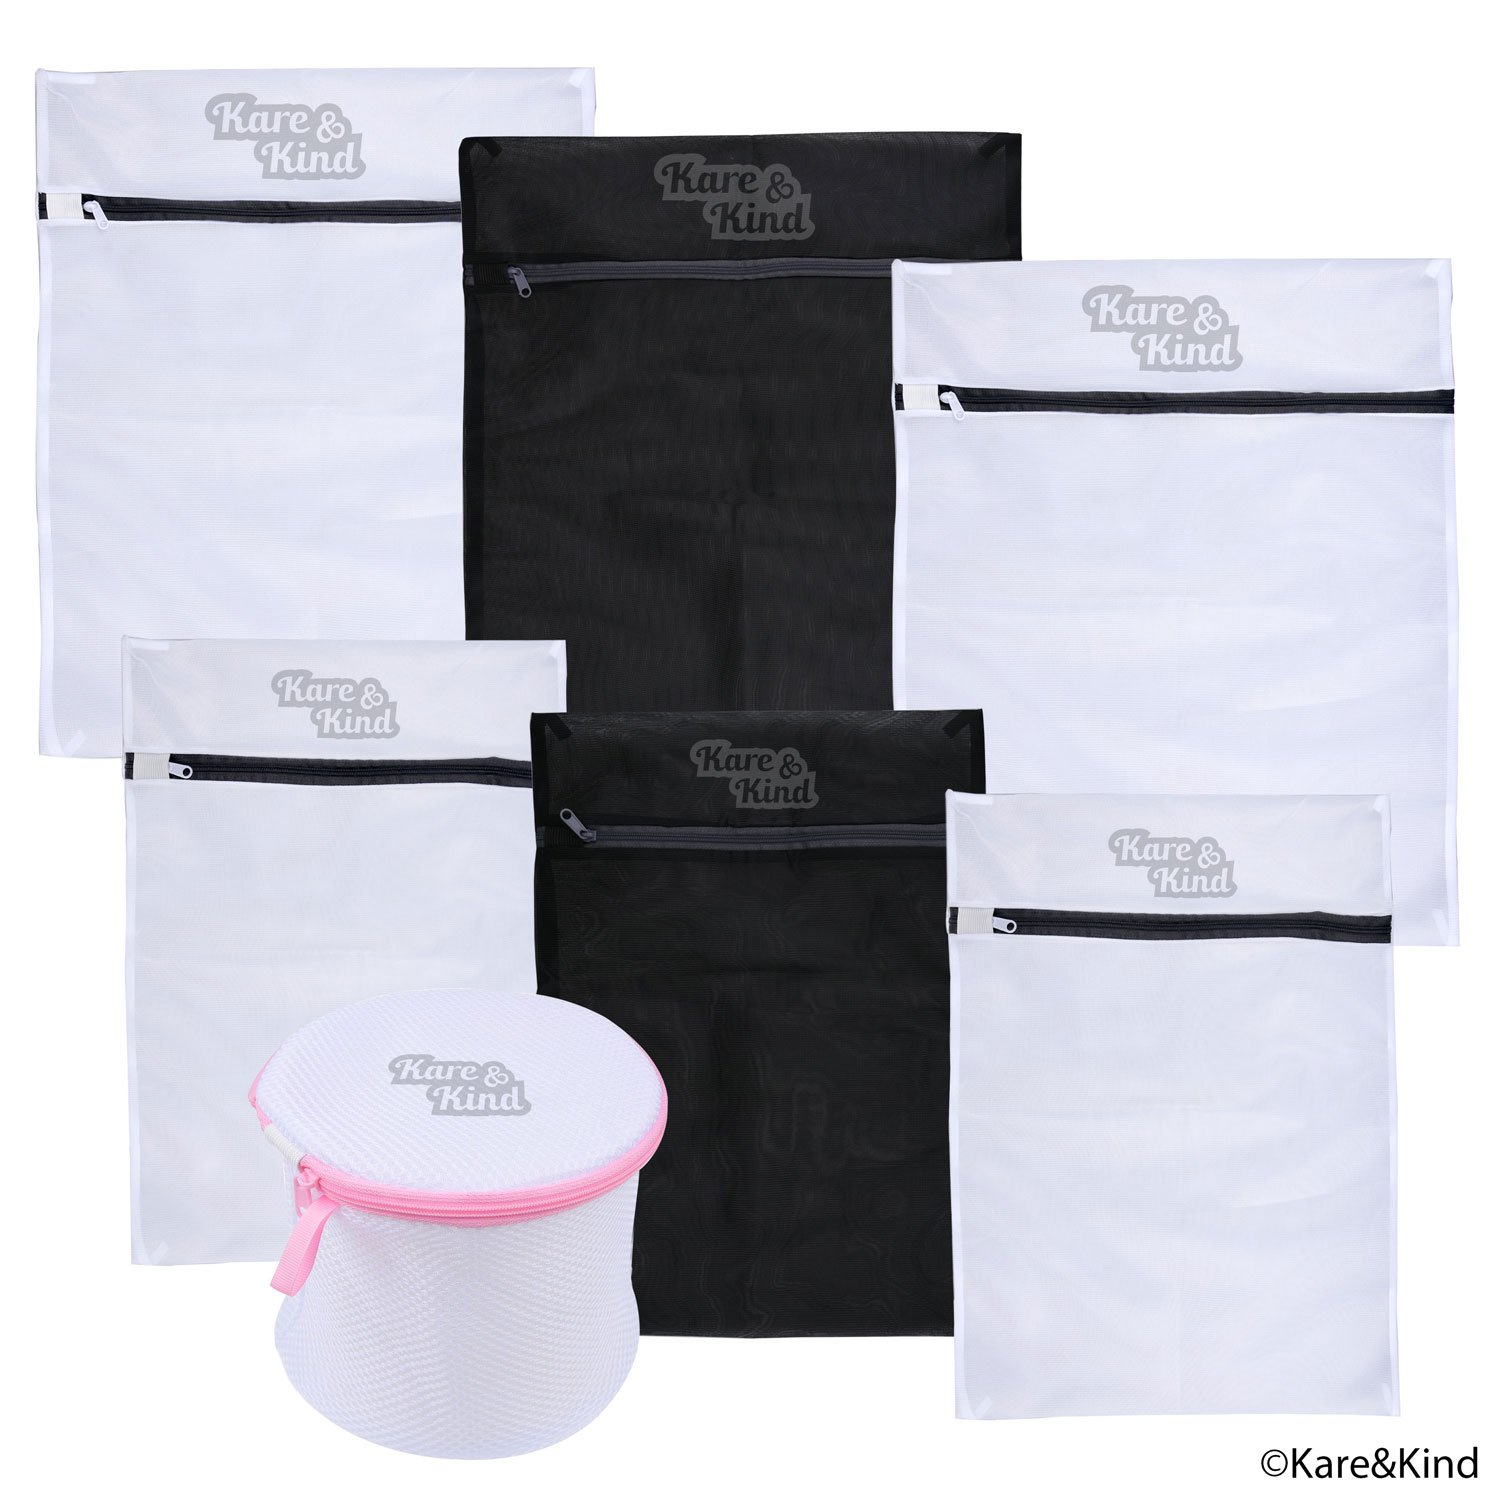 Protective Laundry Bags for Washing Lingerie and Other Delicates (Silk Stockings, Lace Underwear, etc.) - Set of 7 including Bra Wash Bag - Premium Quality Mesh - Rust/Scratch Free Zipper Kare & Kind 13_laundrybags_7_KK